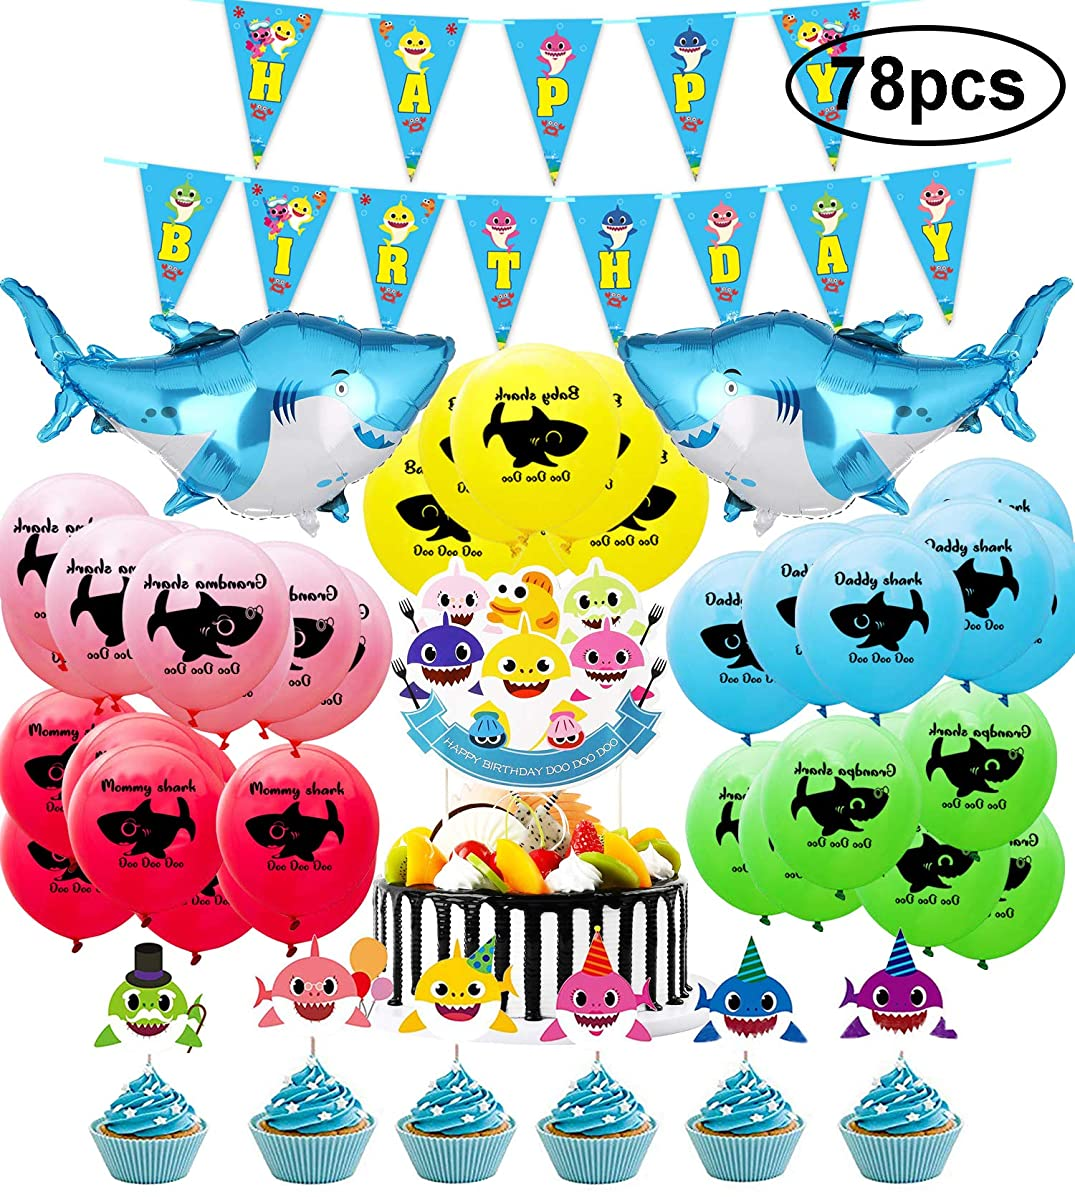 78 Pack Cute Shark Party Supplies Decorations Set,Including Shark banner, Shark balloons, Shark Cupcake Toppers and Shark Cake Toppers Ideal for Kids Girls Boys Shark Theme Birthday Baby Shower Party Decorations